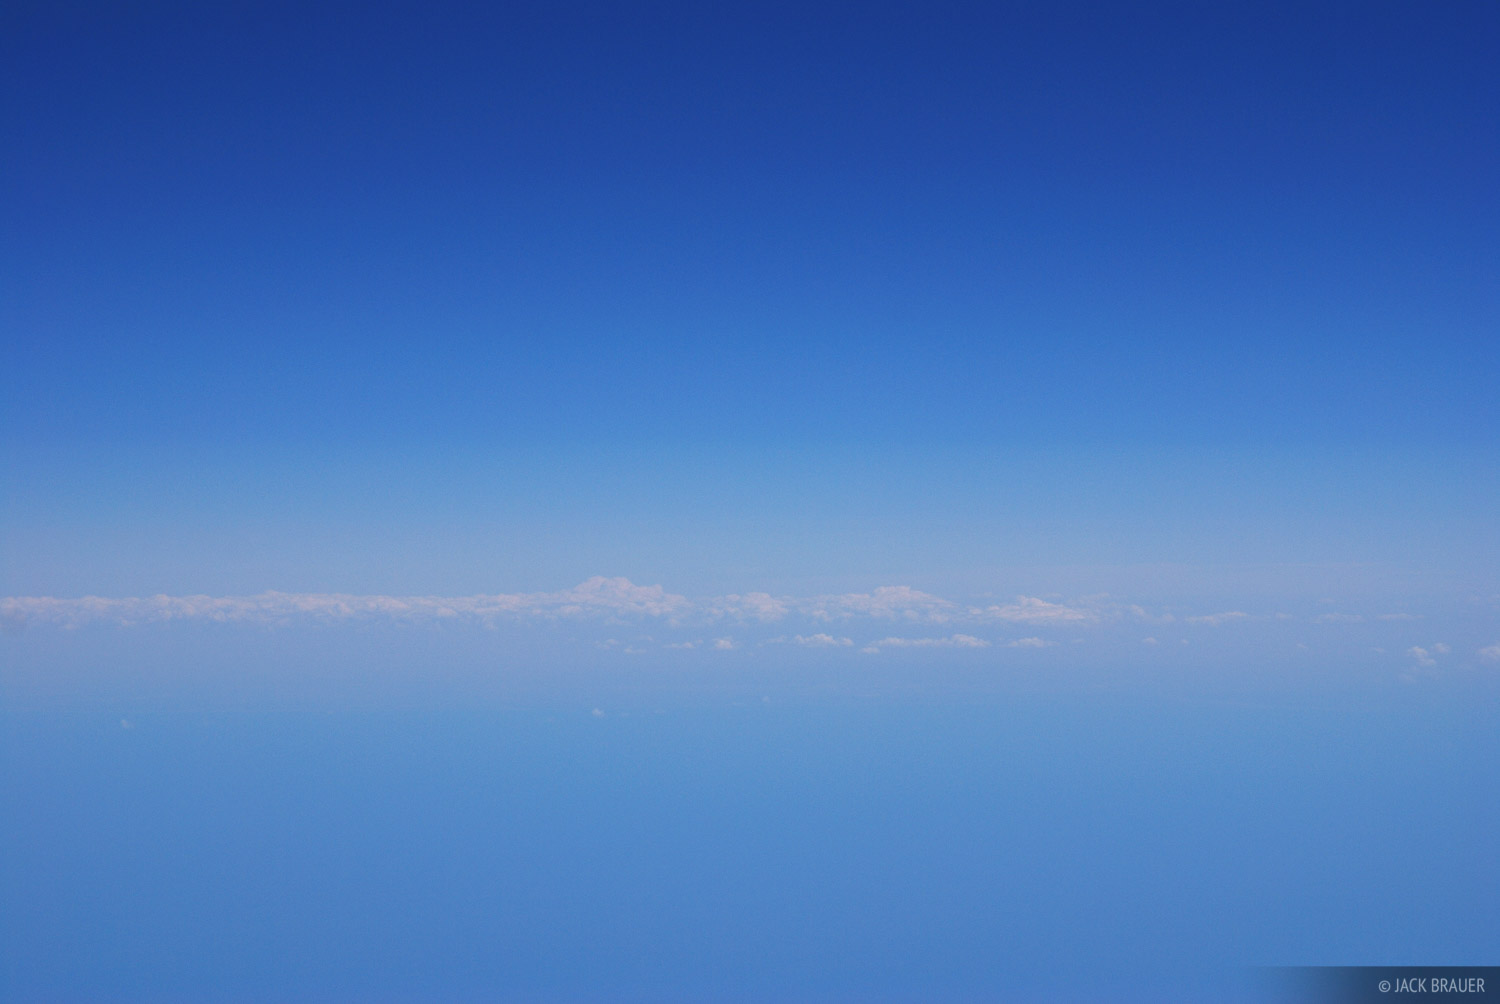 Blue sky above the Gulf of California as seen from an airliner